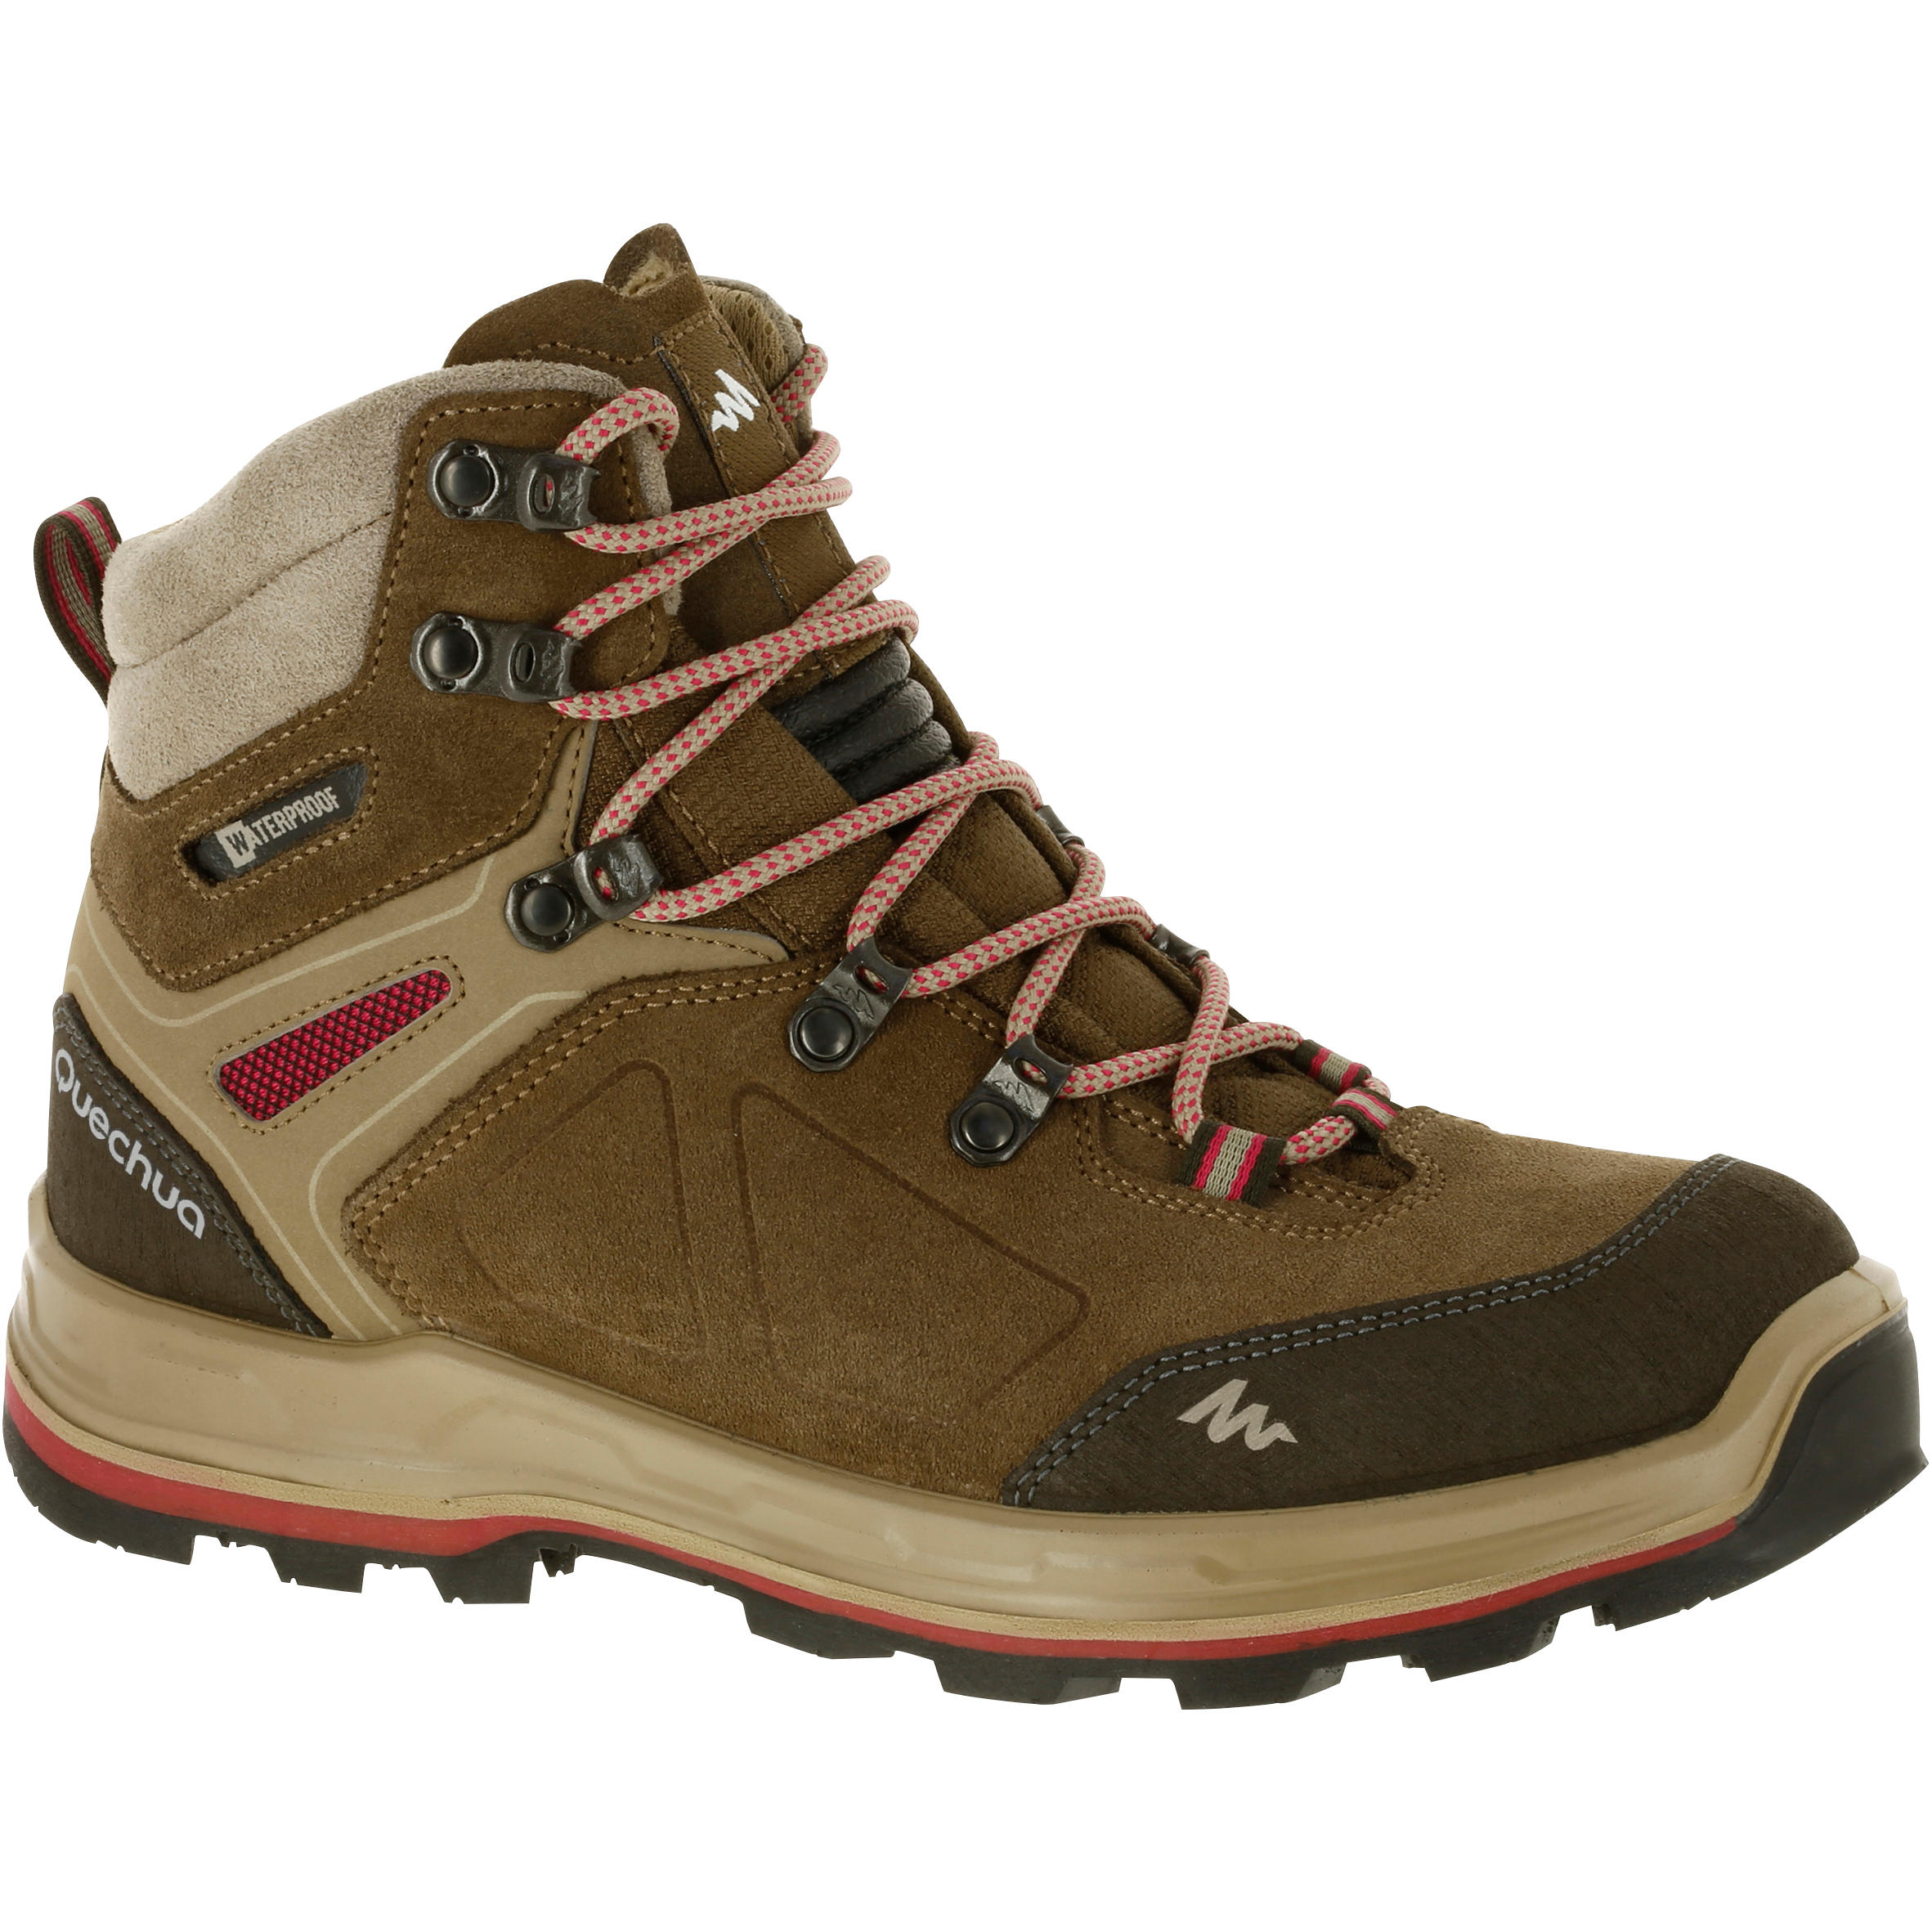 Trekking Shoes Buy Trekking Shoes Online At Low Prices